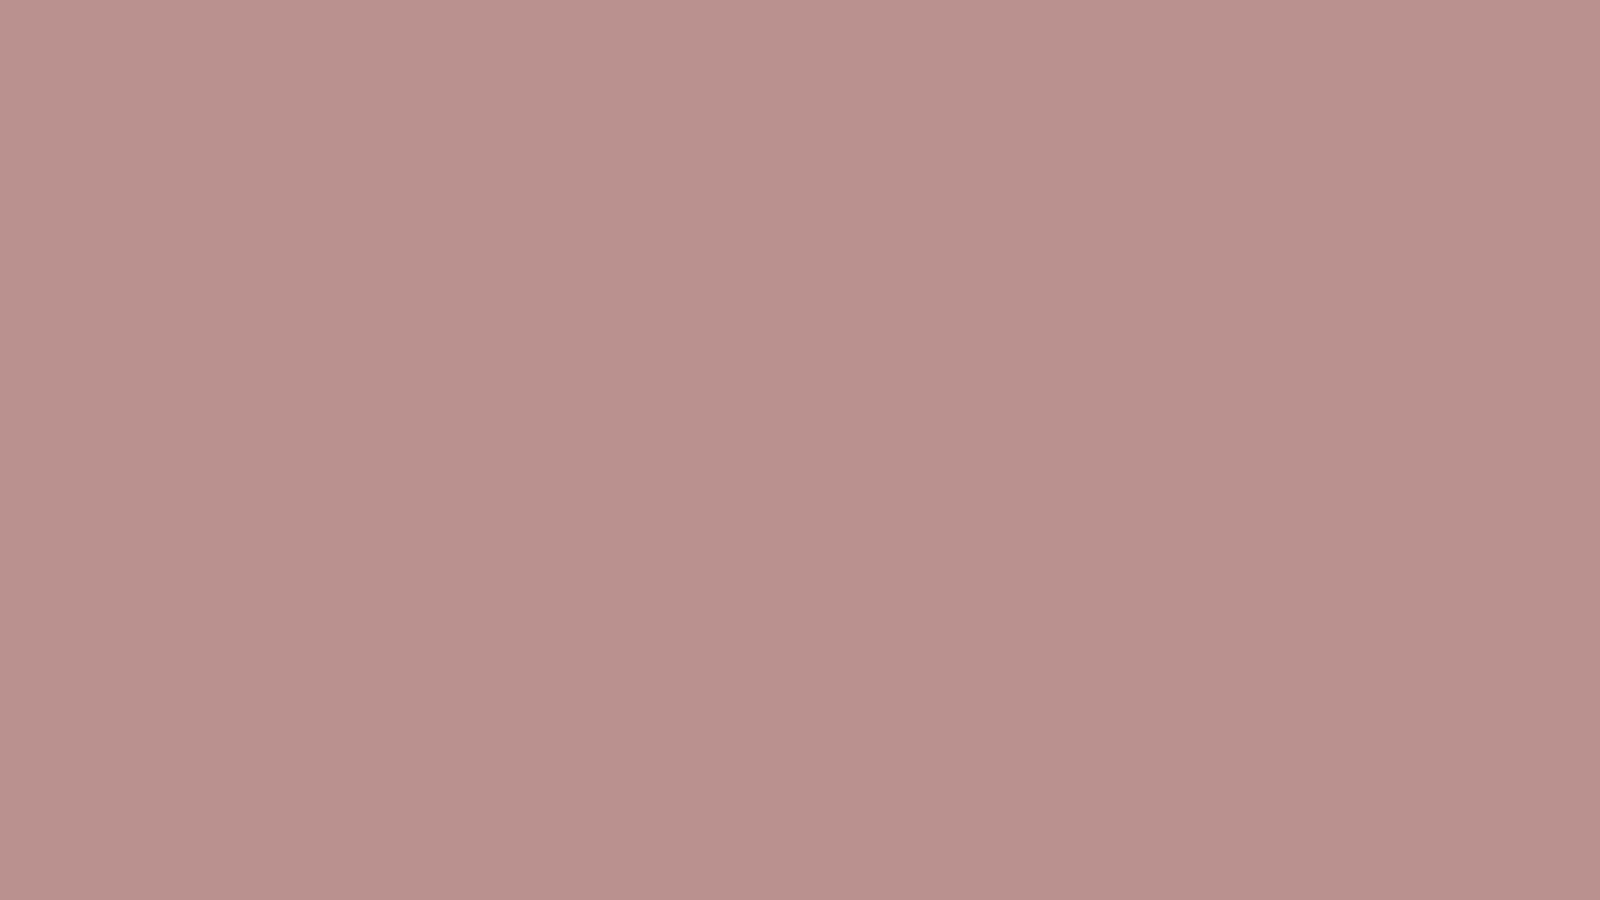 1600x900 Rosy Brown Solid Color Background